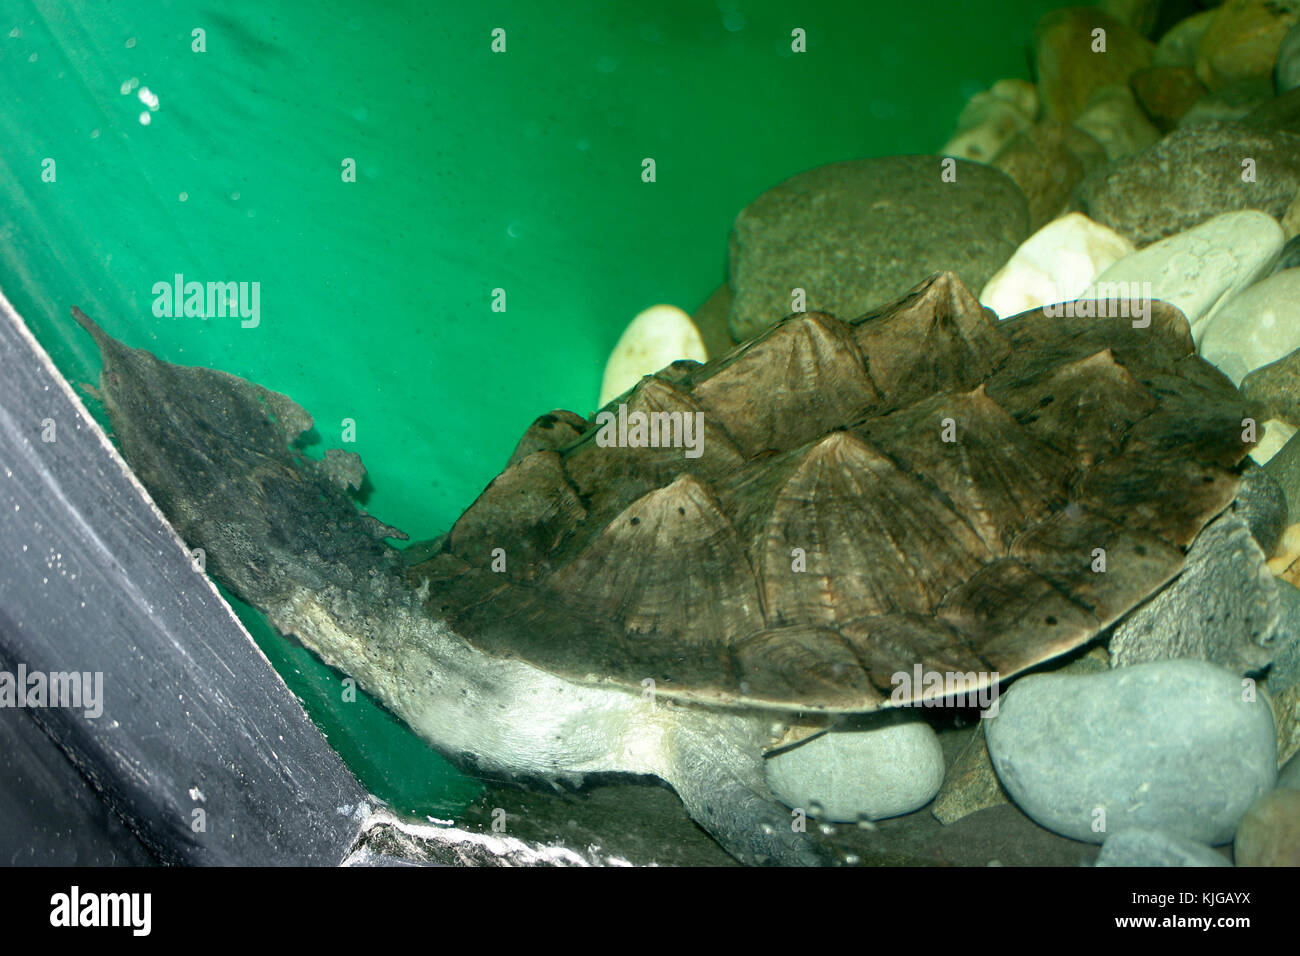 Mata mata turtle on exhibit in zoo stock photo 166316974 alamy mata mata turtle on exhibit in zoo publicscrutiny Choice Image